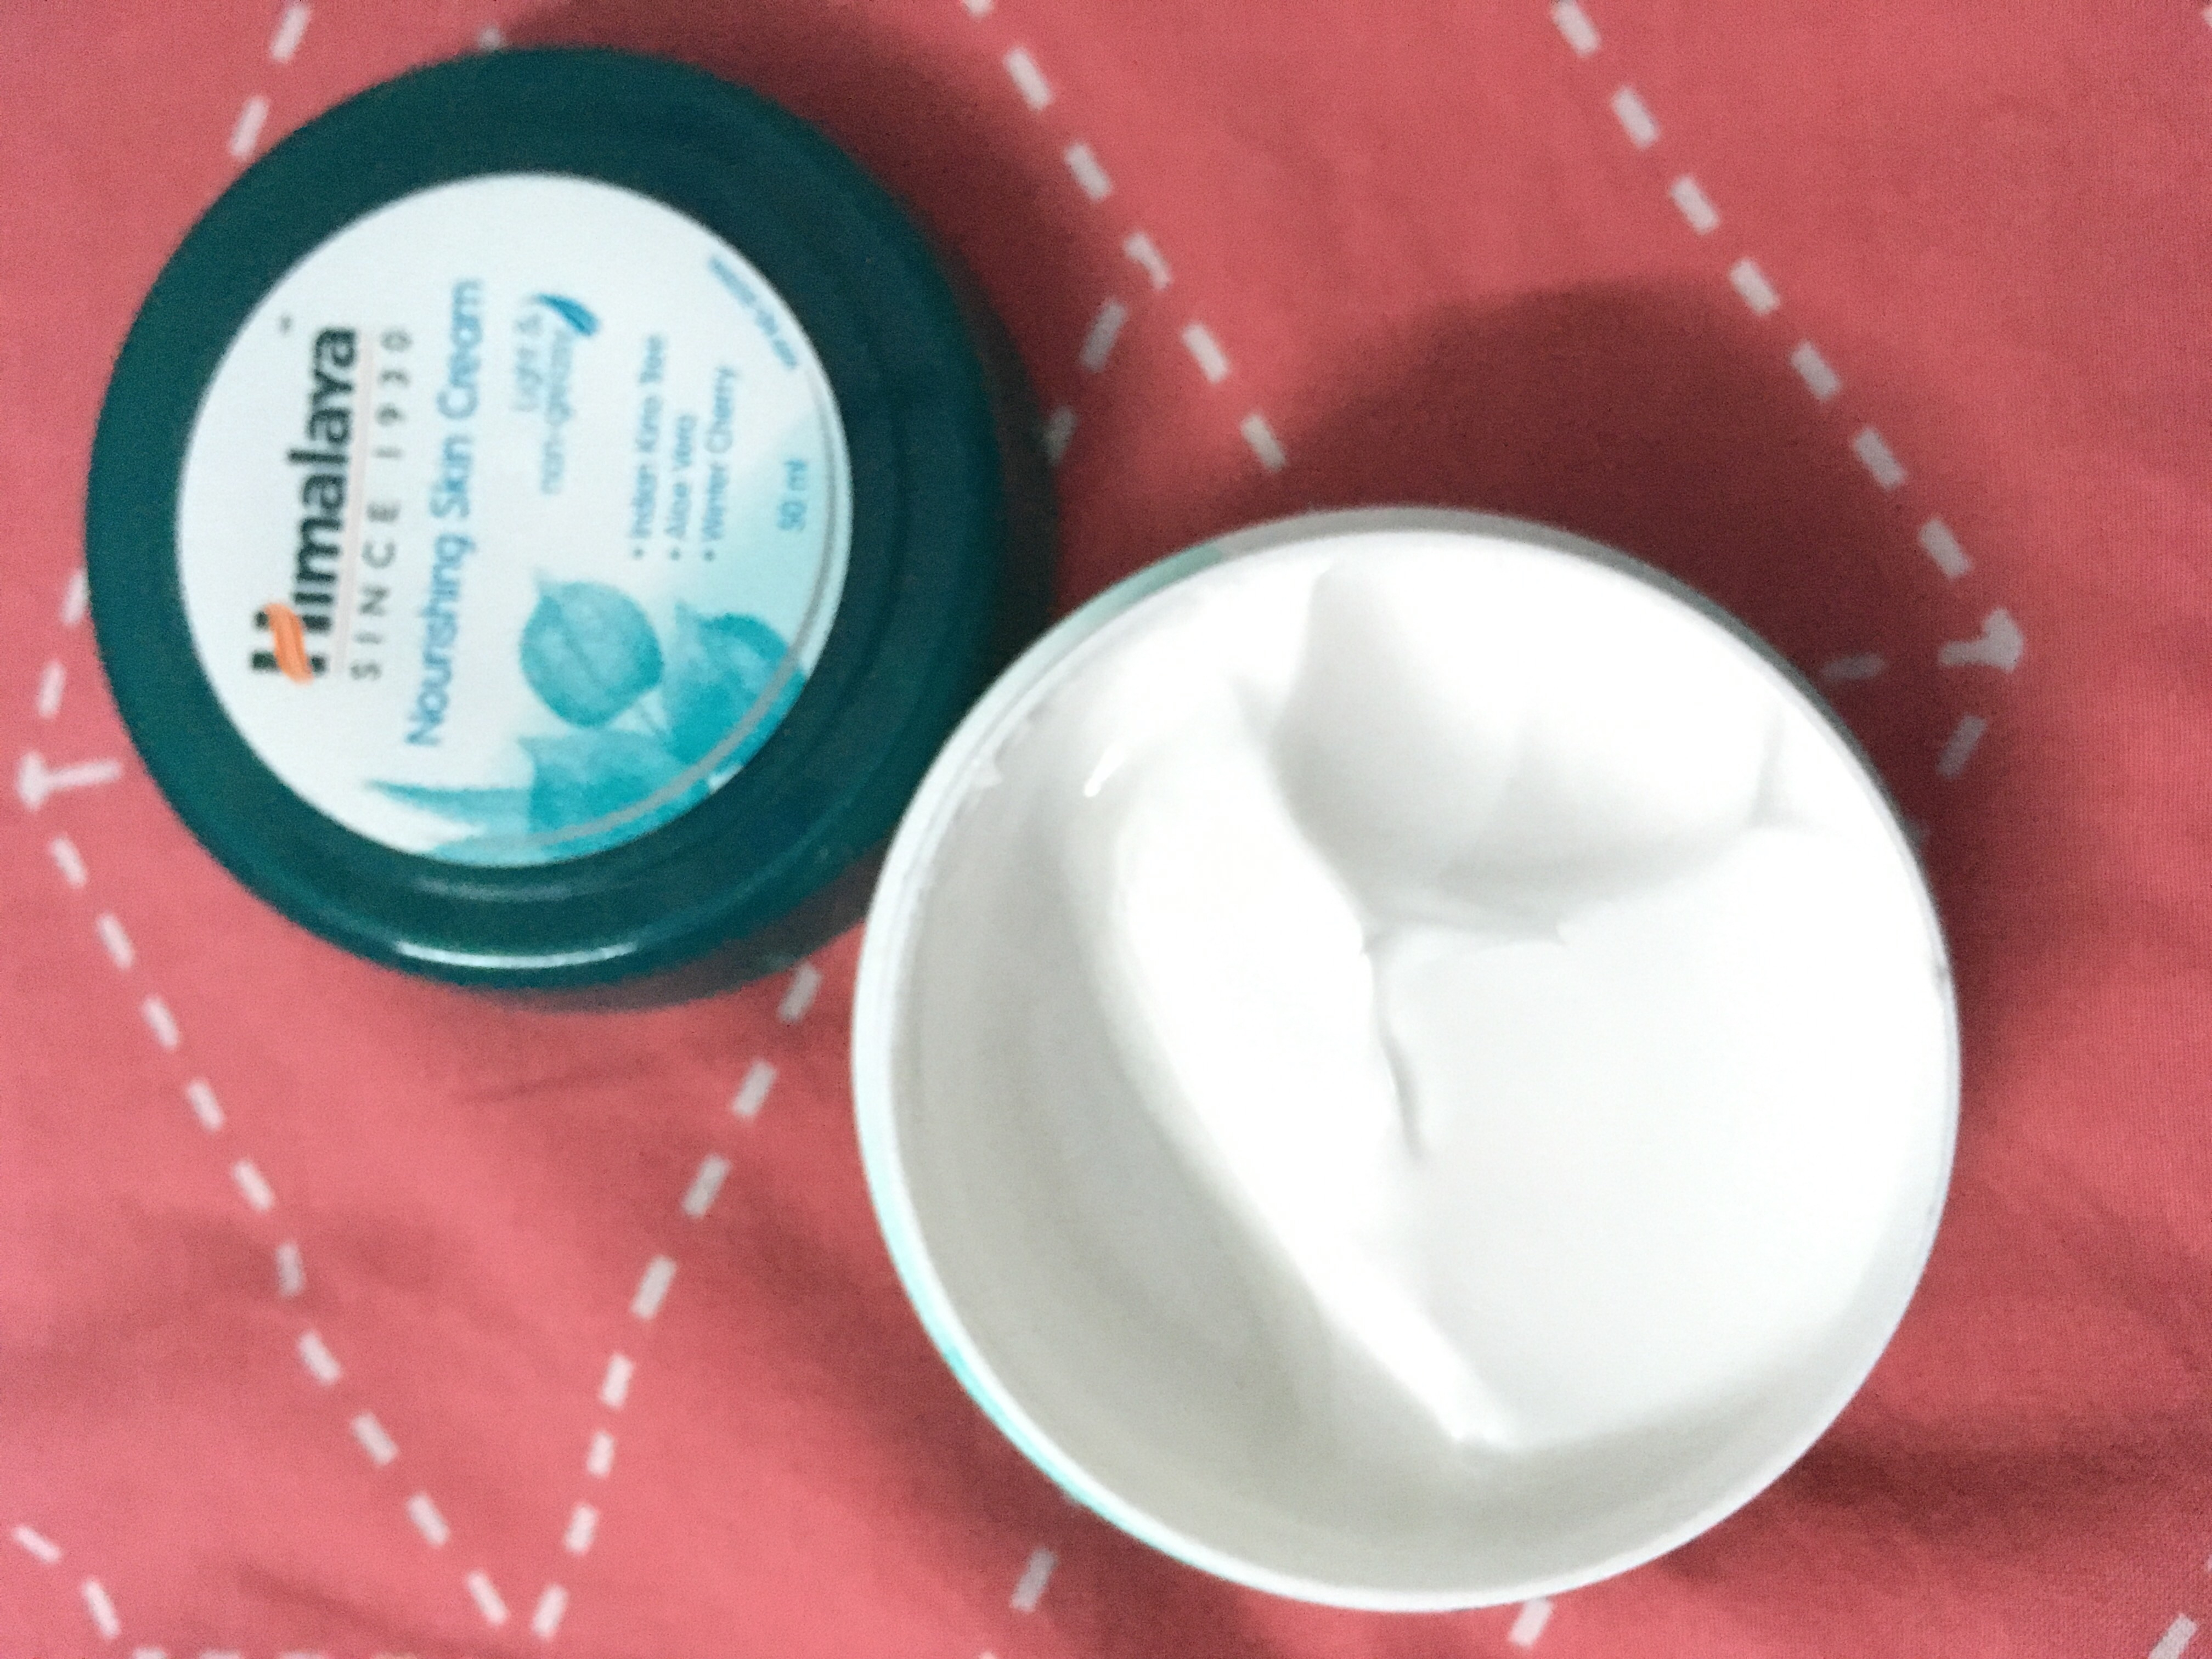 Himalaya Herbals Nourishing Skin Cream pic 1-Herbal goodness-By sayanikarmakar